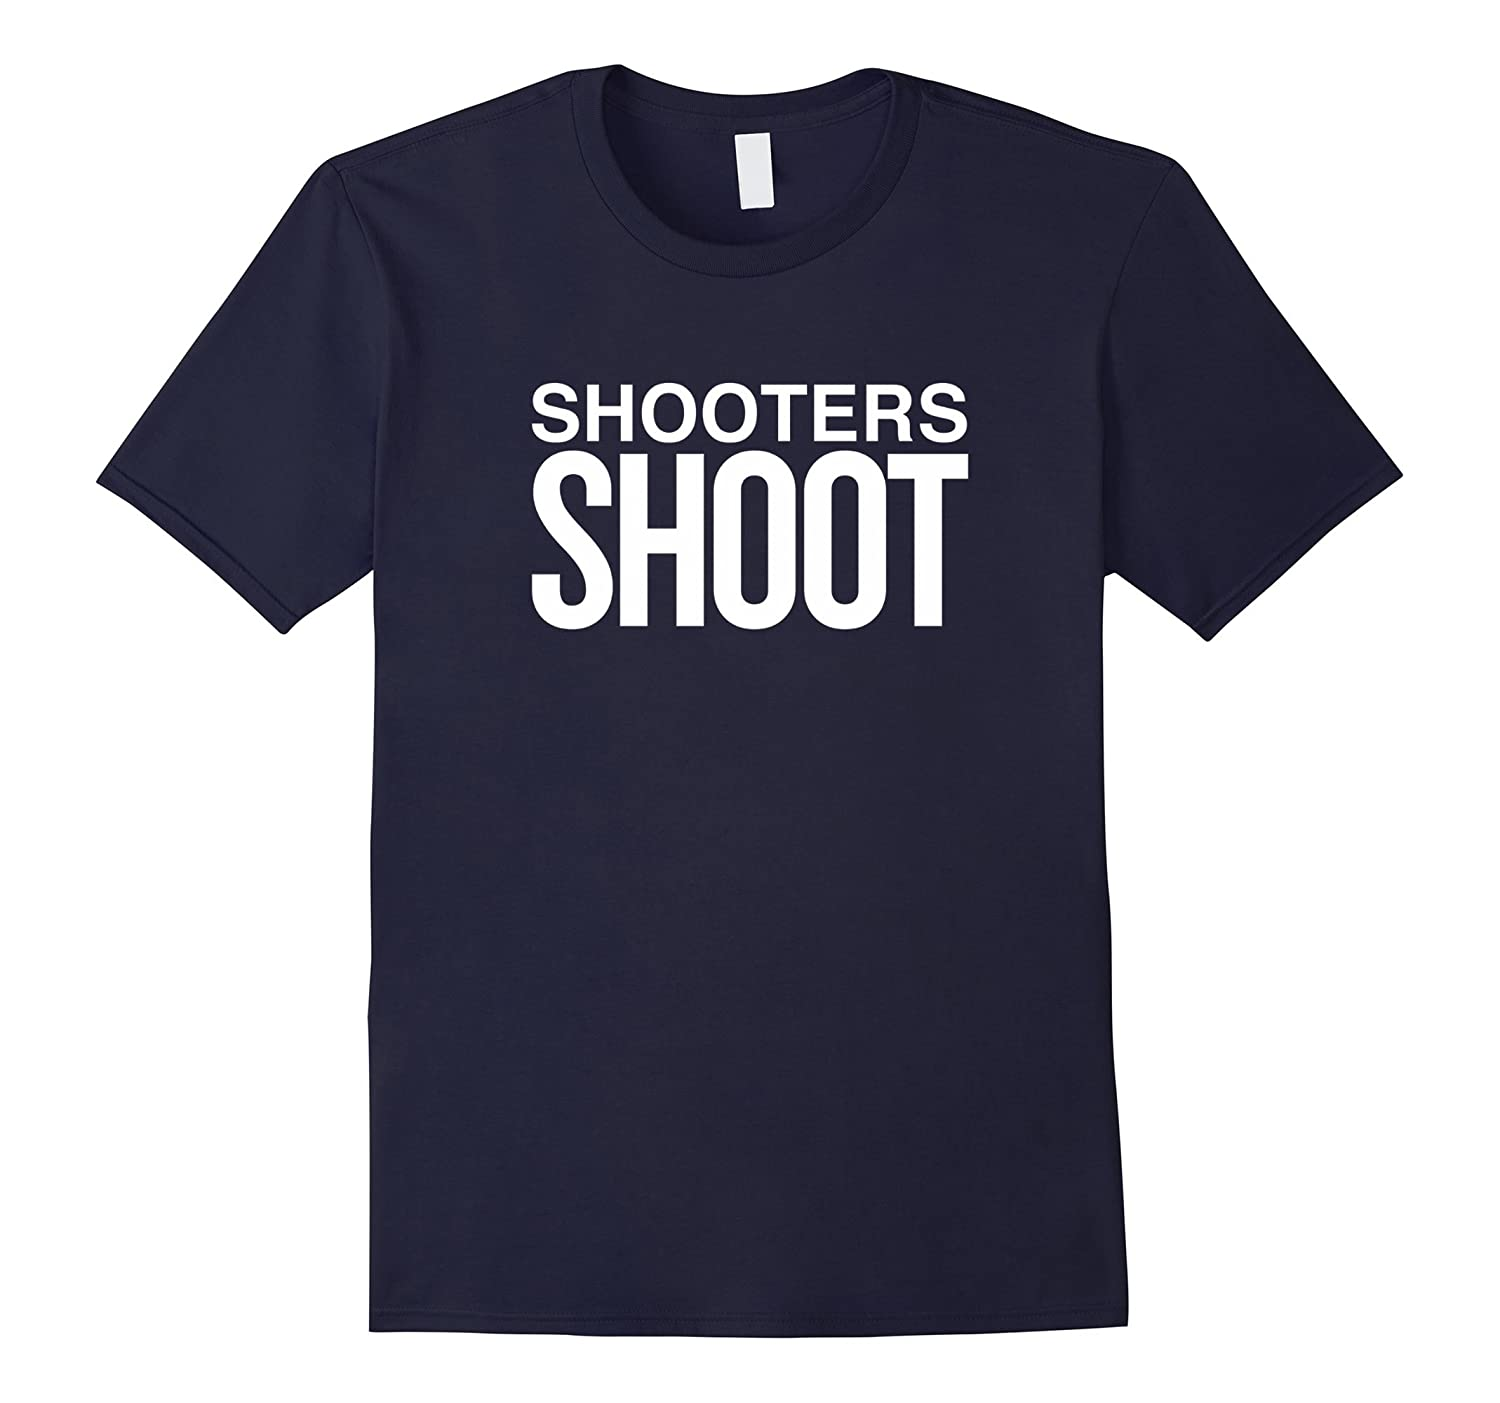 Shooters Shoot Sports Fan Basketball Football Soccer T-Shirt-Art